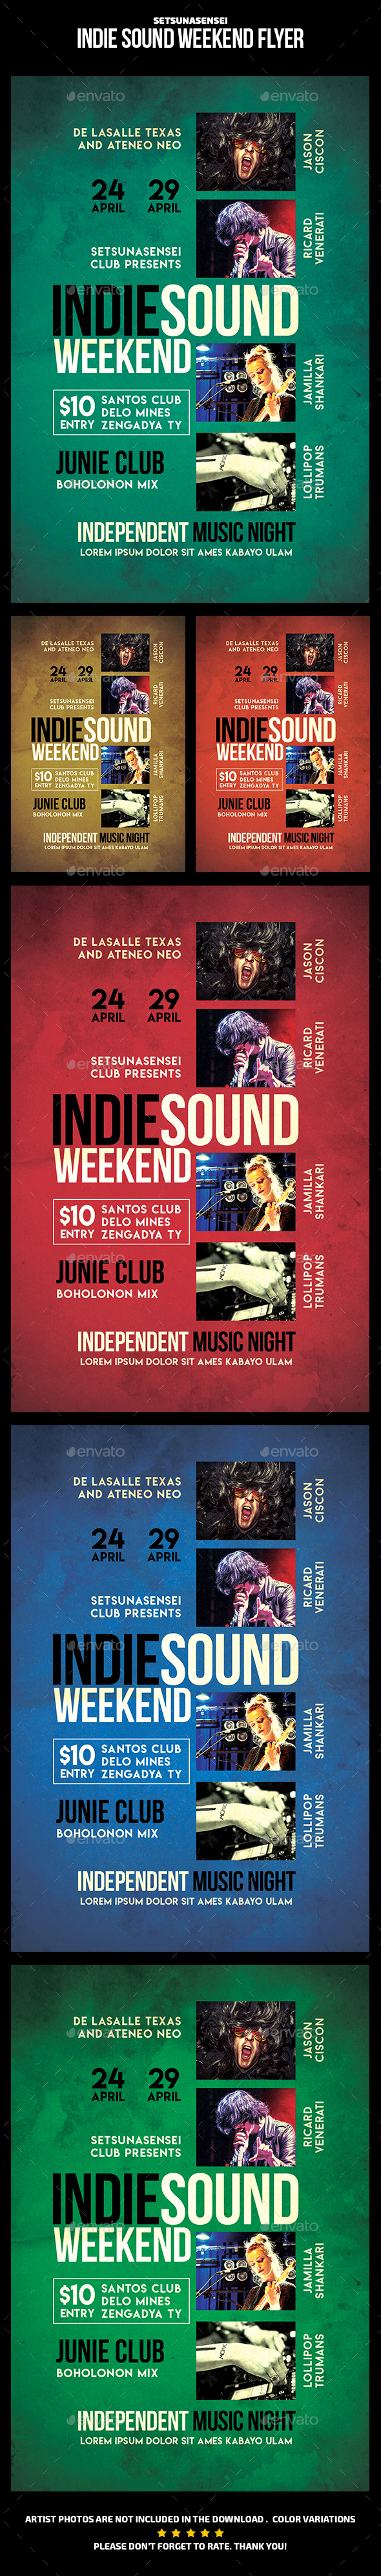 Indie Sound Weekend Flyer - Events Flyers